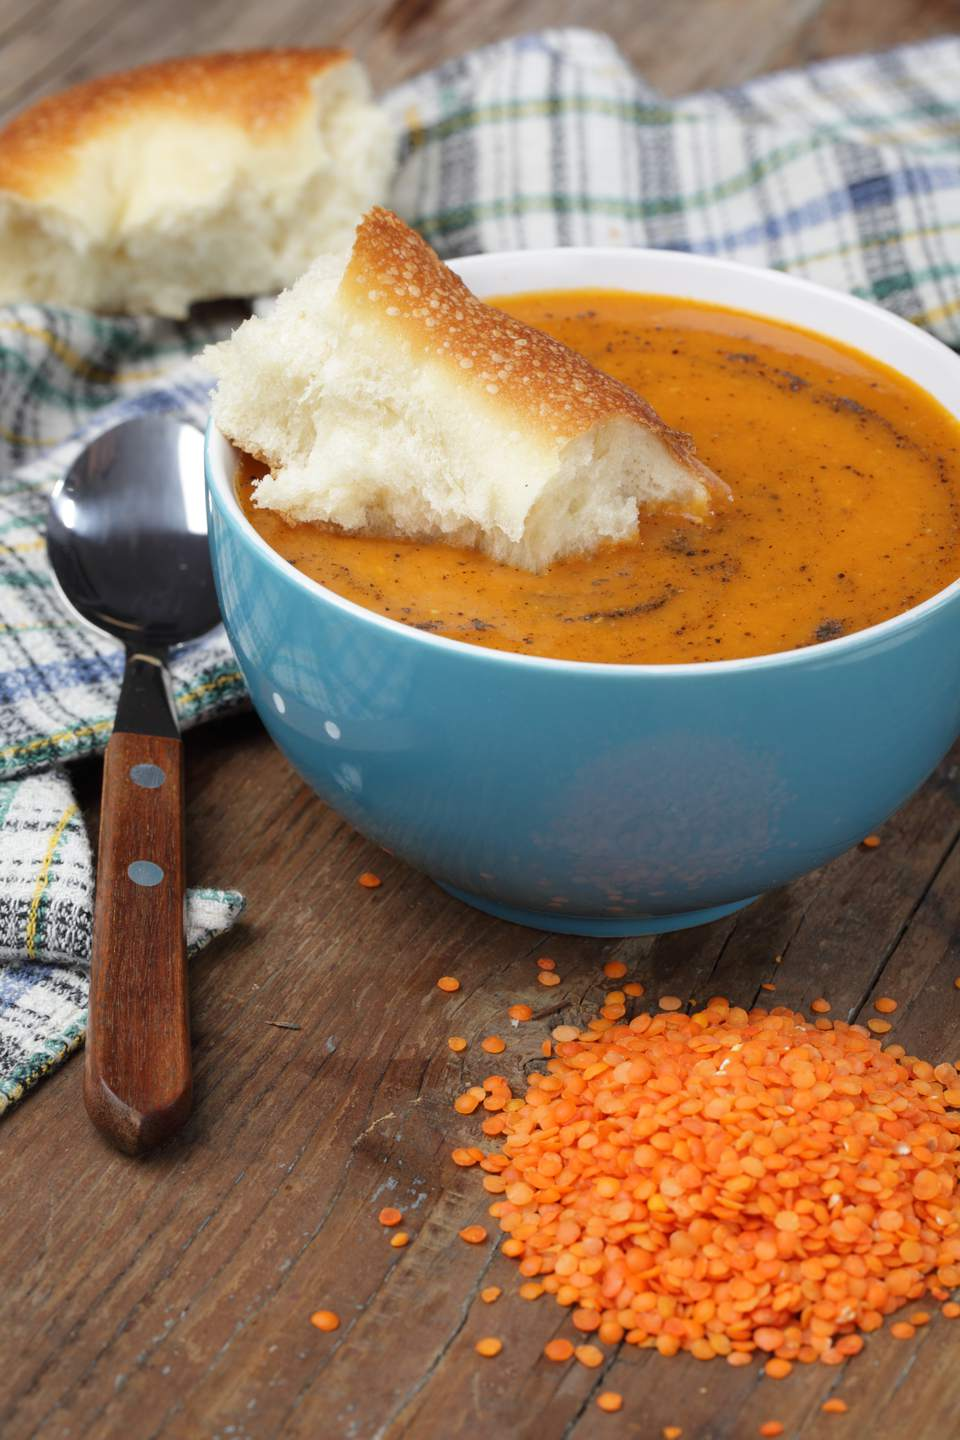 Turkish 'Ezogelin' soup is hearty mix of red lentils, vegetables and spices.